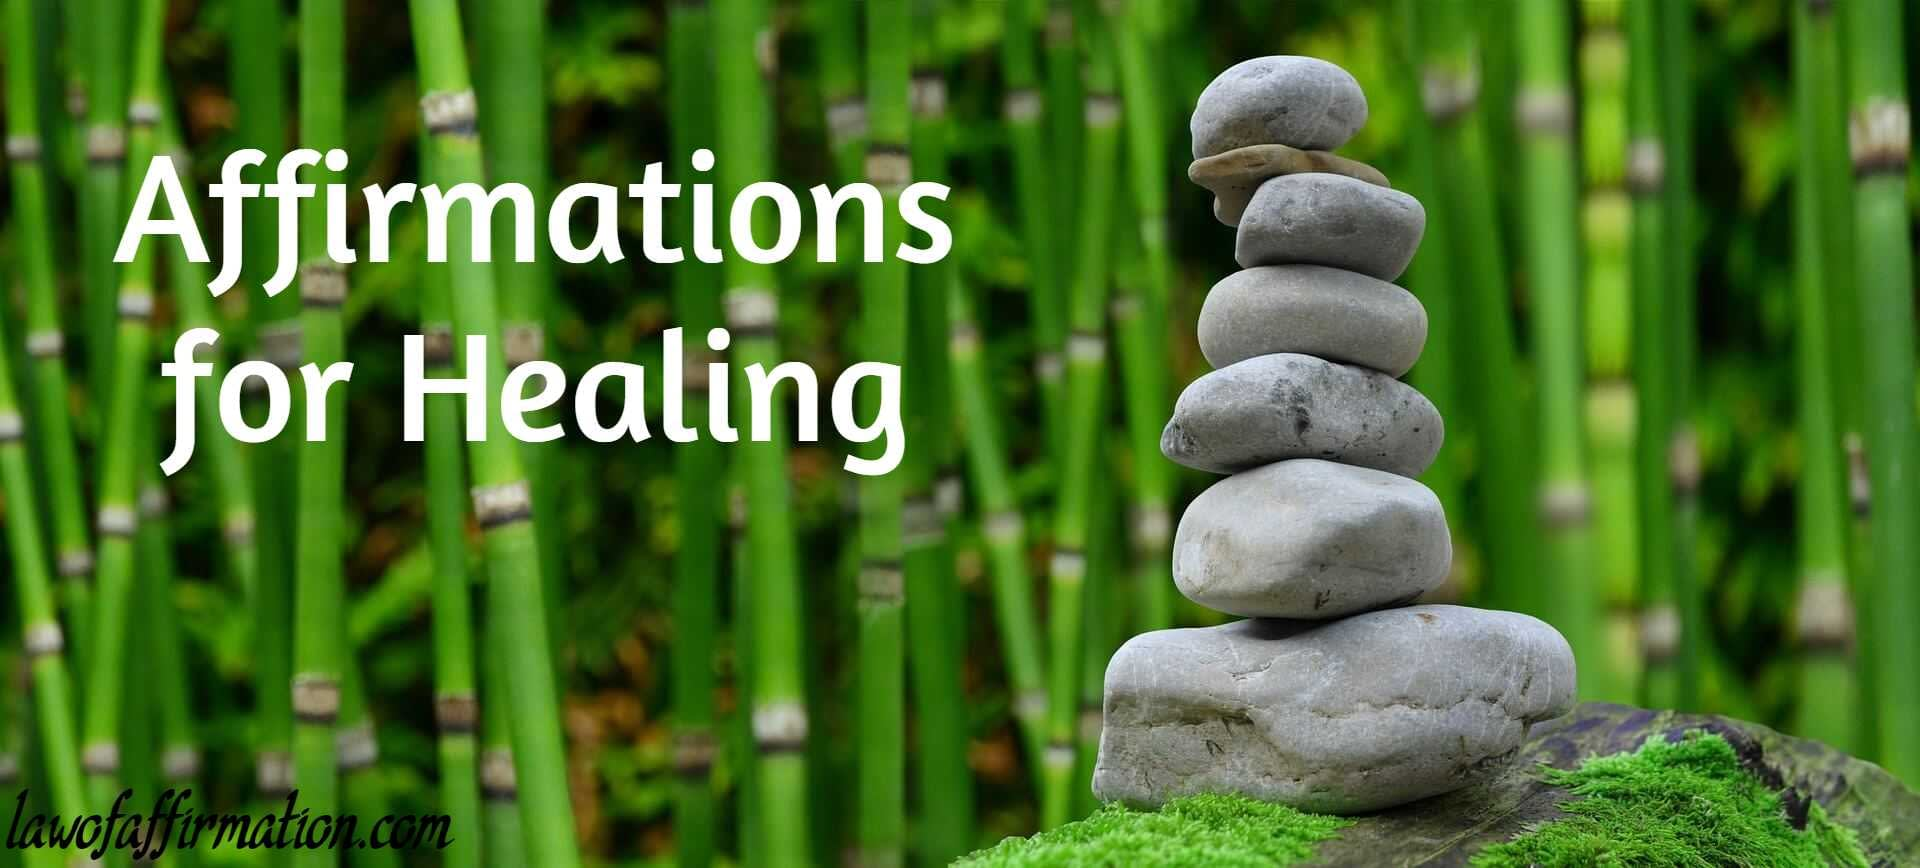 Affirmations-for-healing